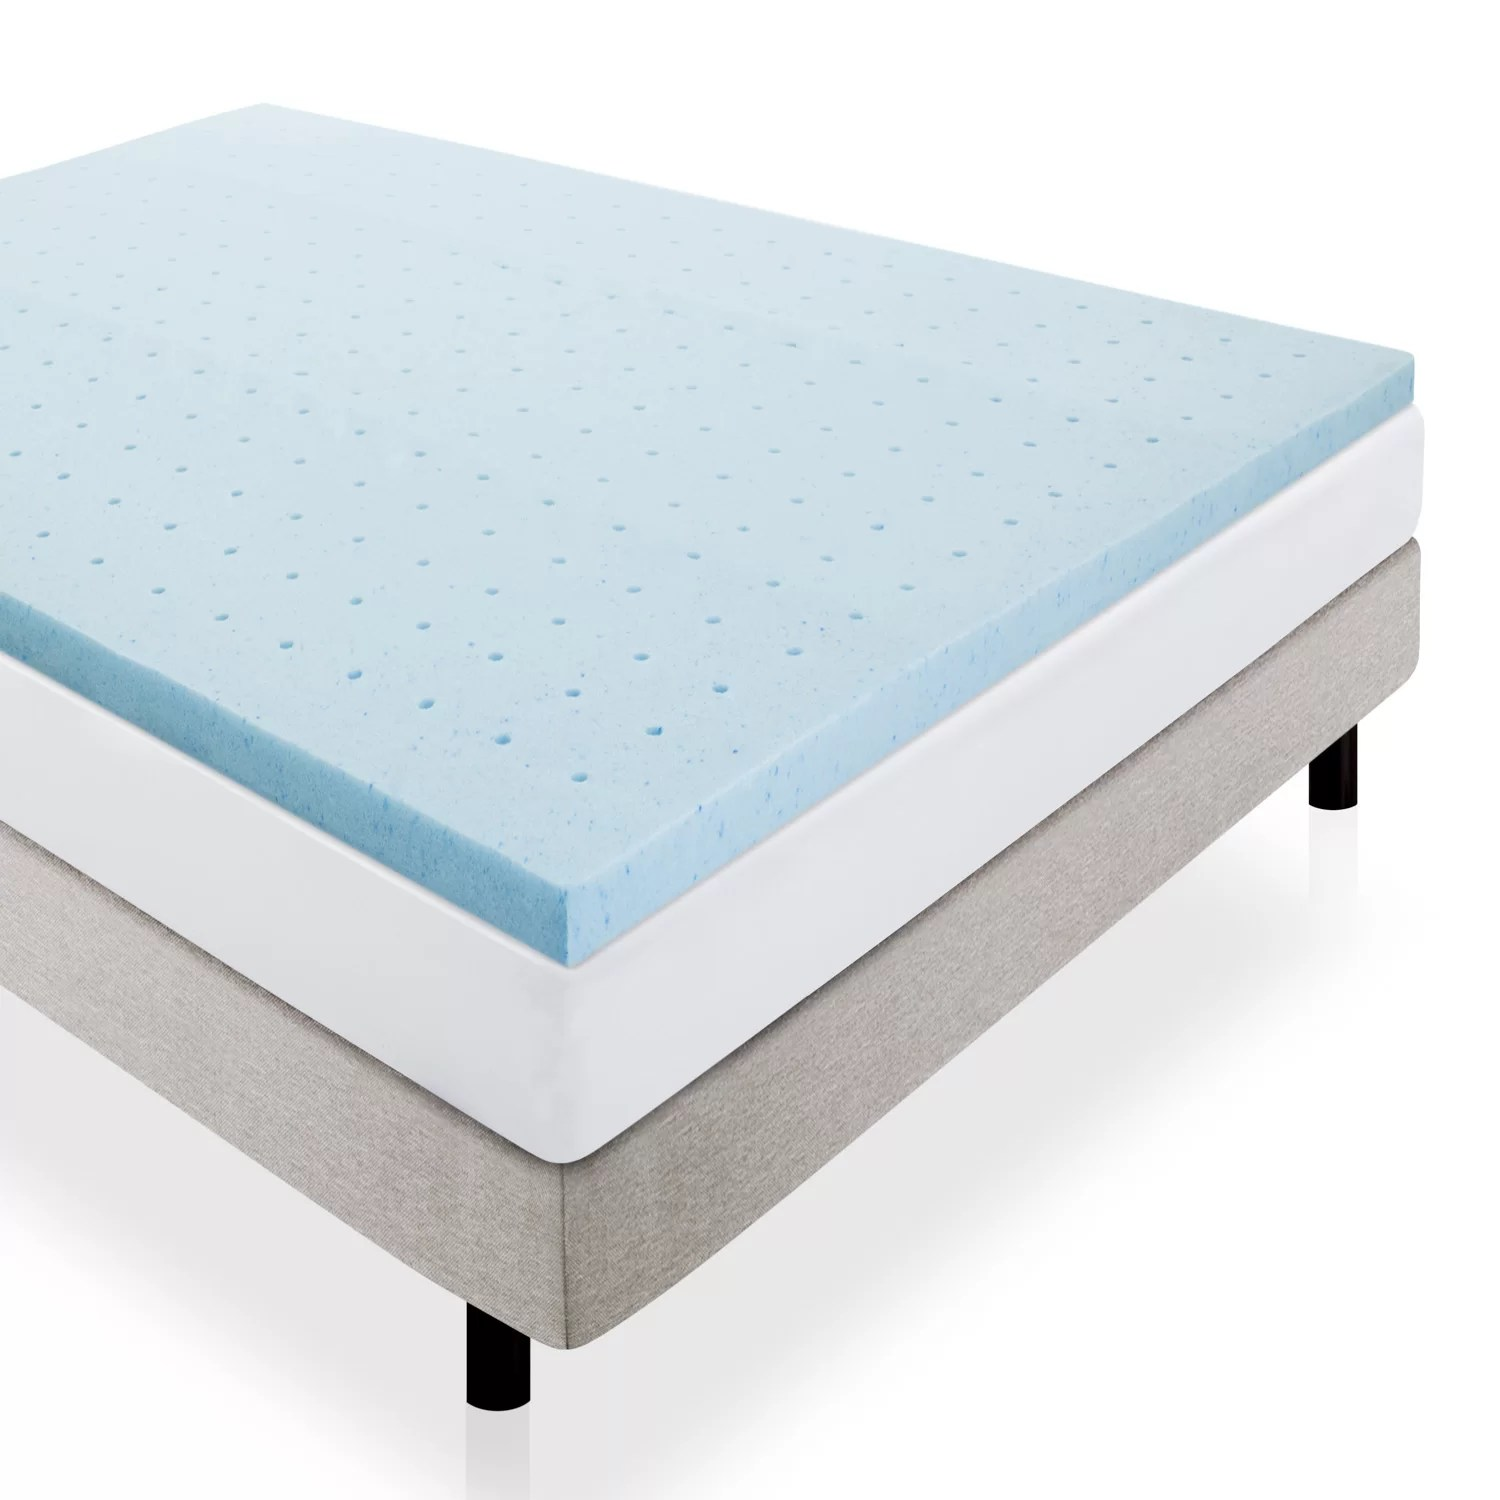 Buy Mattress Topper Lucid 2 Quot Ventilated Gel Memory Foam Mattress Topper